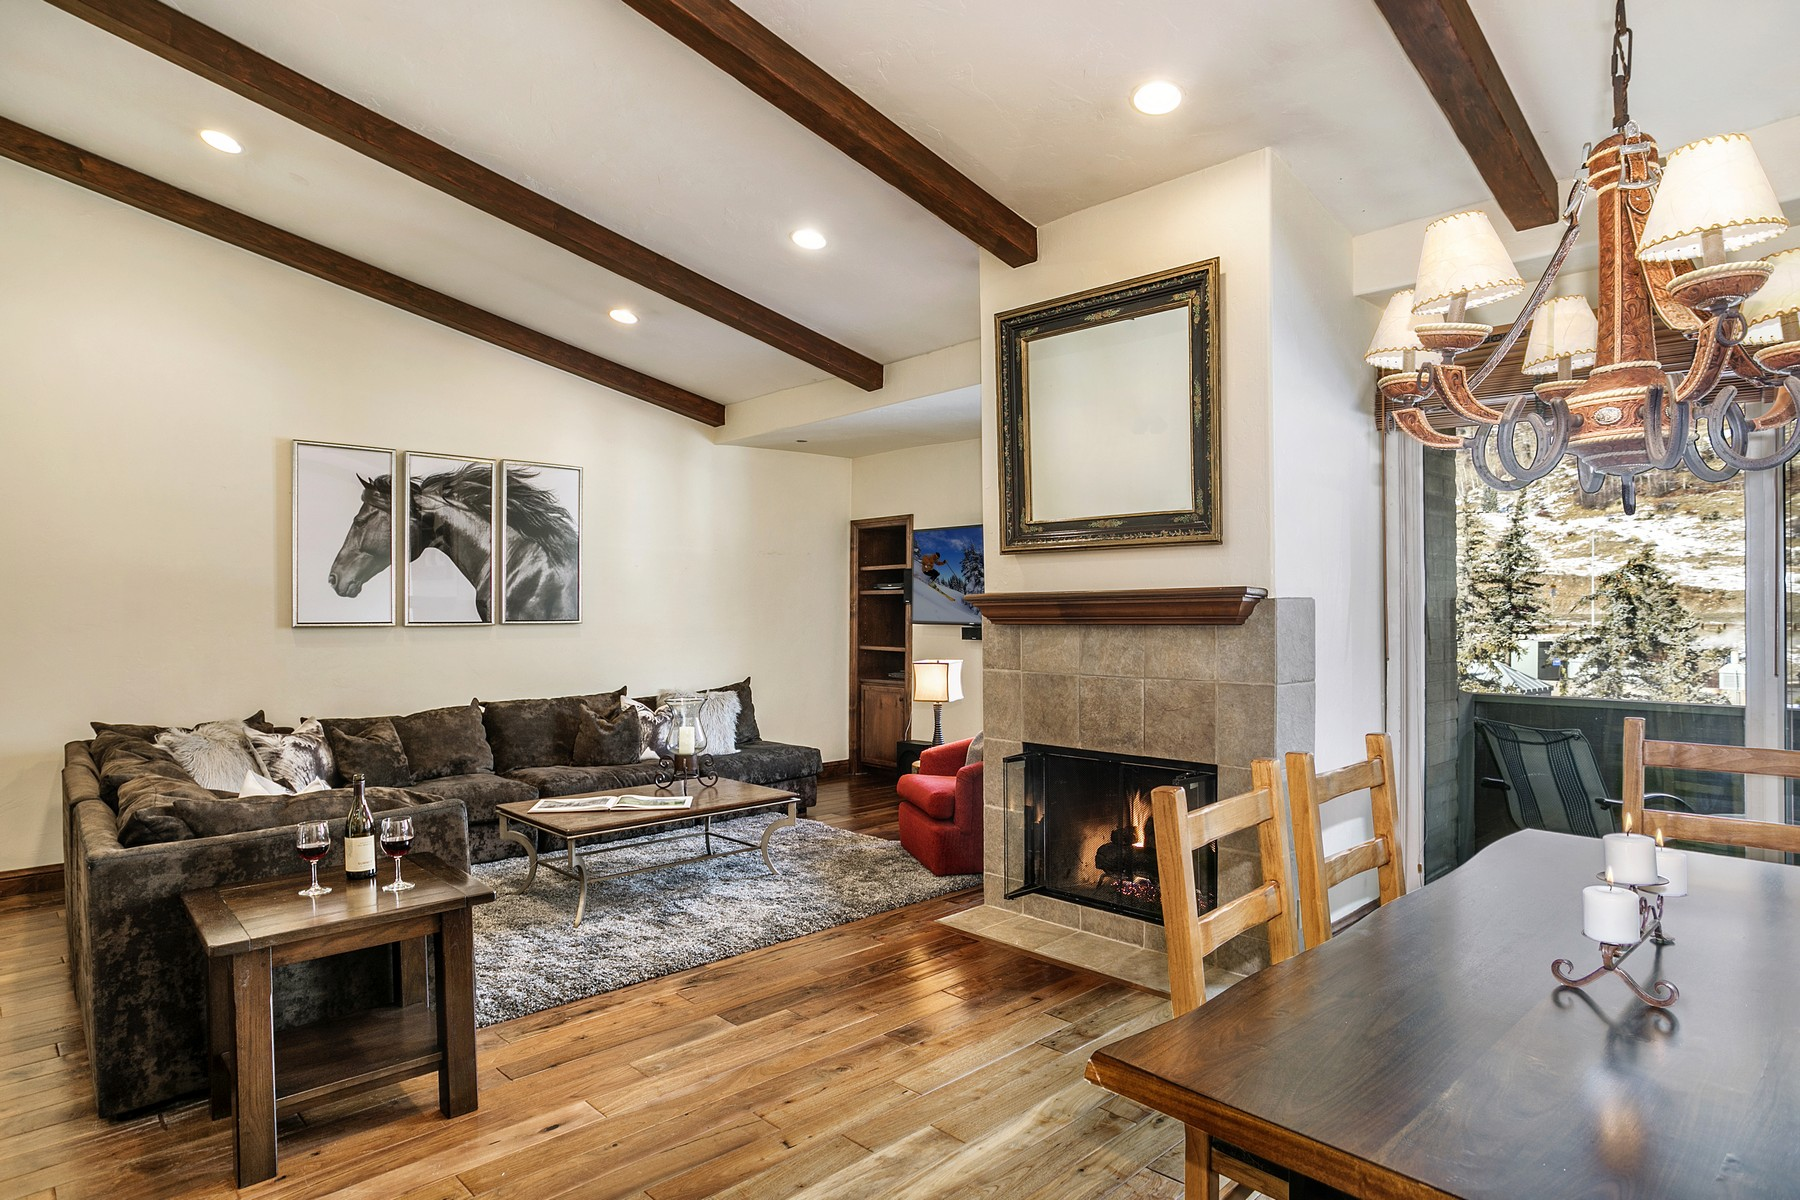 Additional photo for property listing at Mountain Haus 685 292 E Meadow Dr, #685 Vail, Colorado 81657 United States